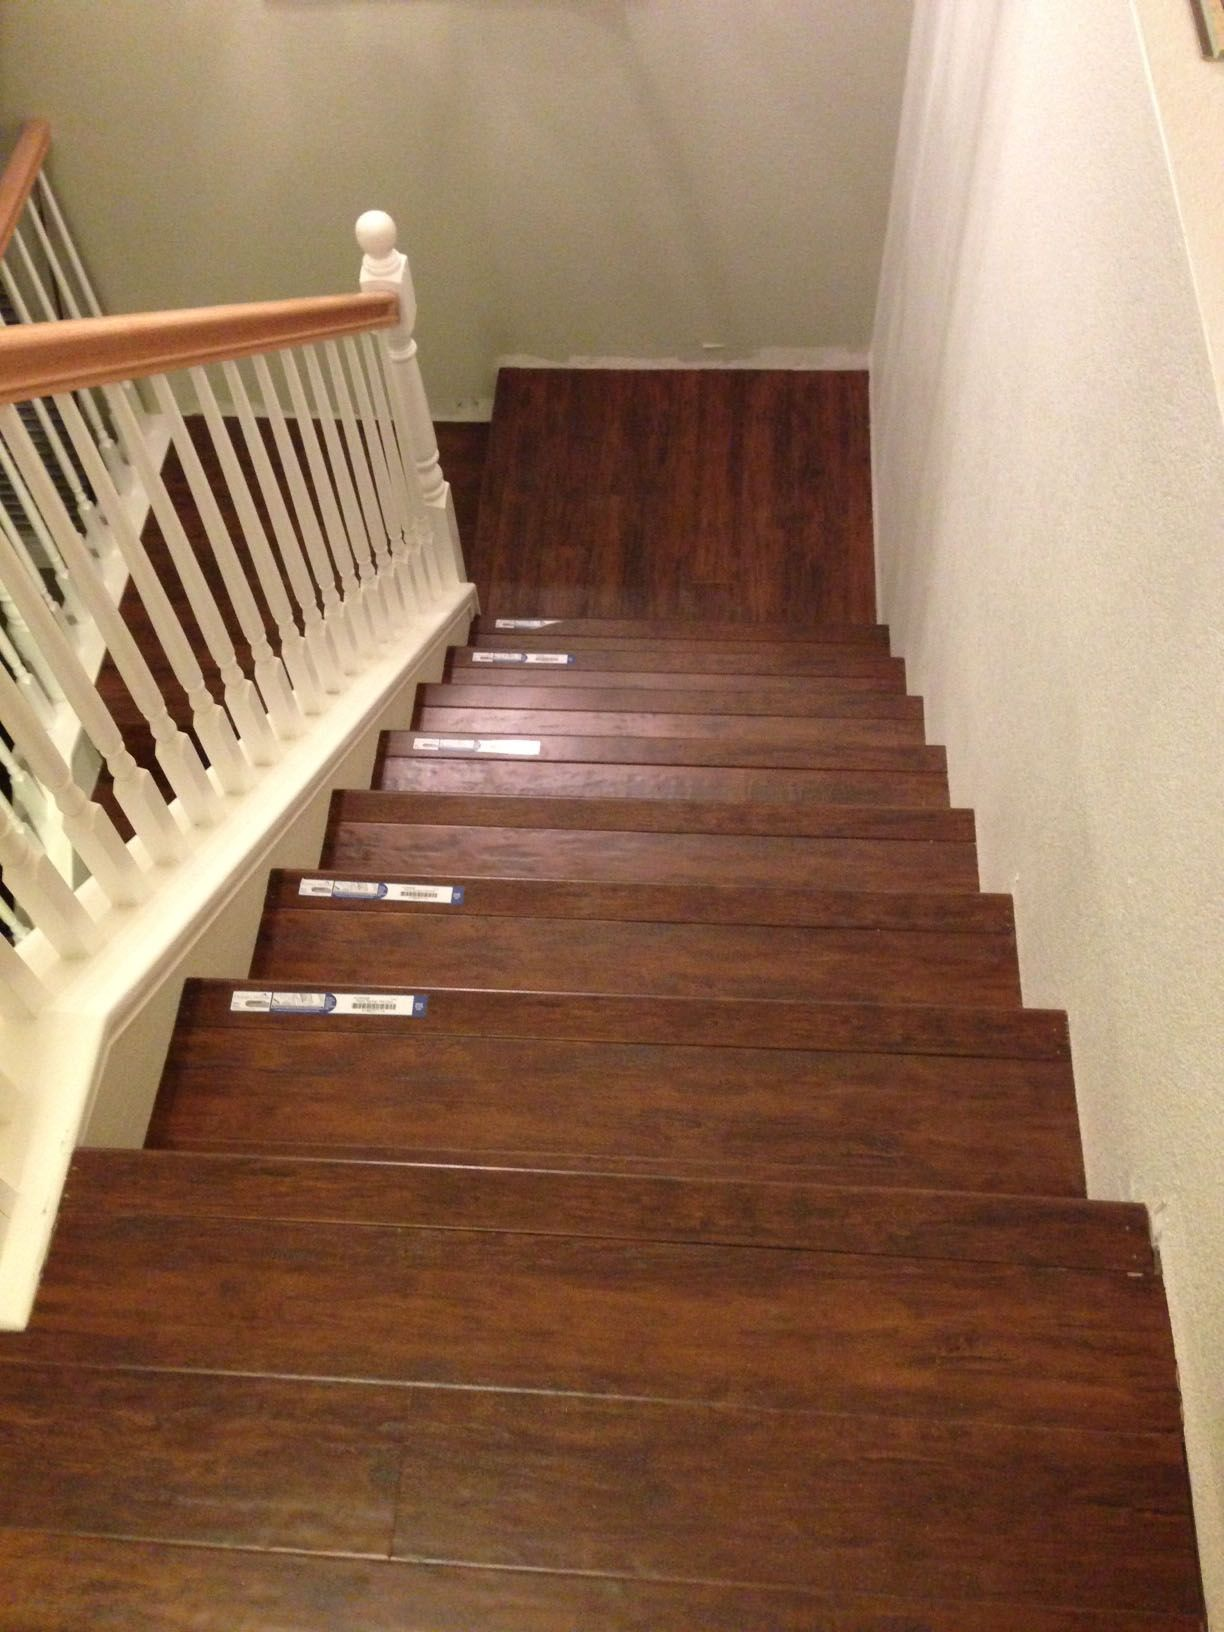 Captivating Your Stairs Need Love, Too! Upgrading Your Flooring? Upgrade Your Stairs,  With